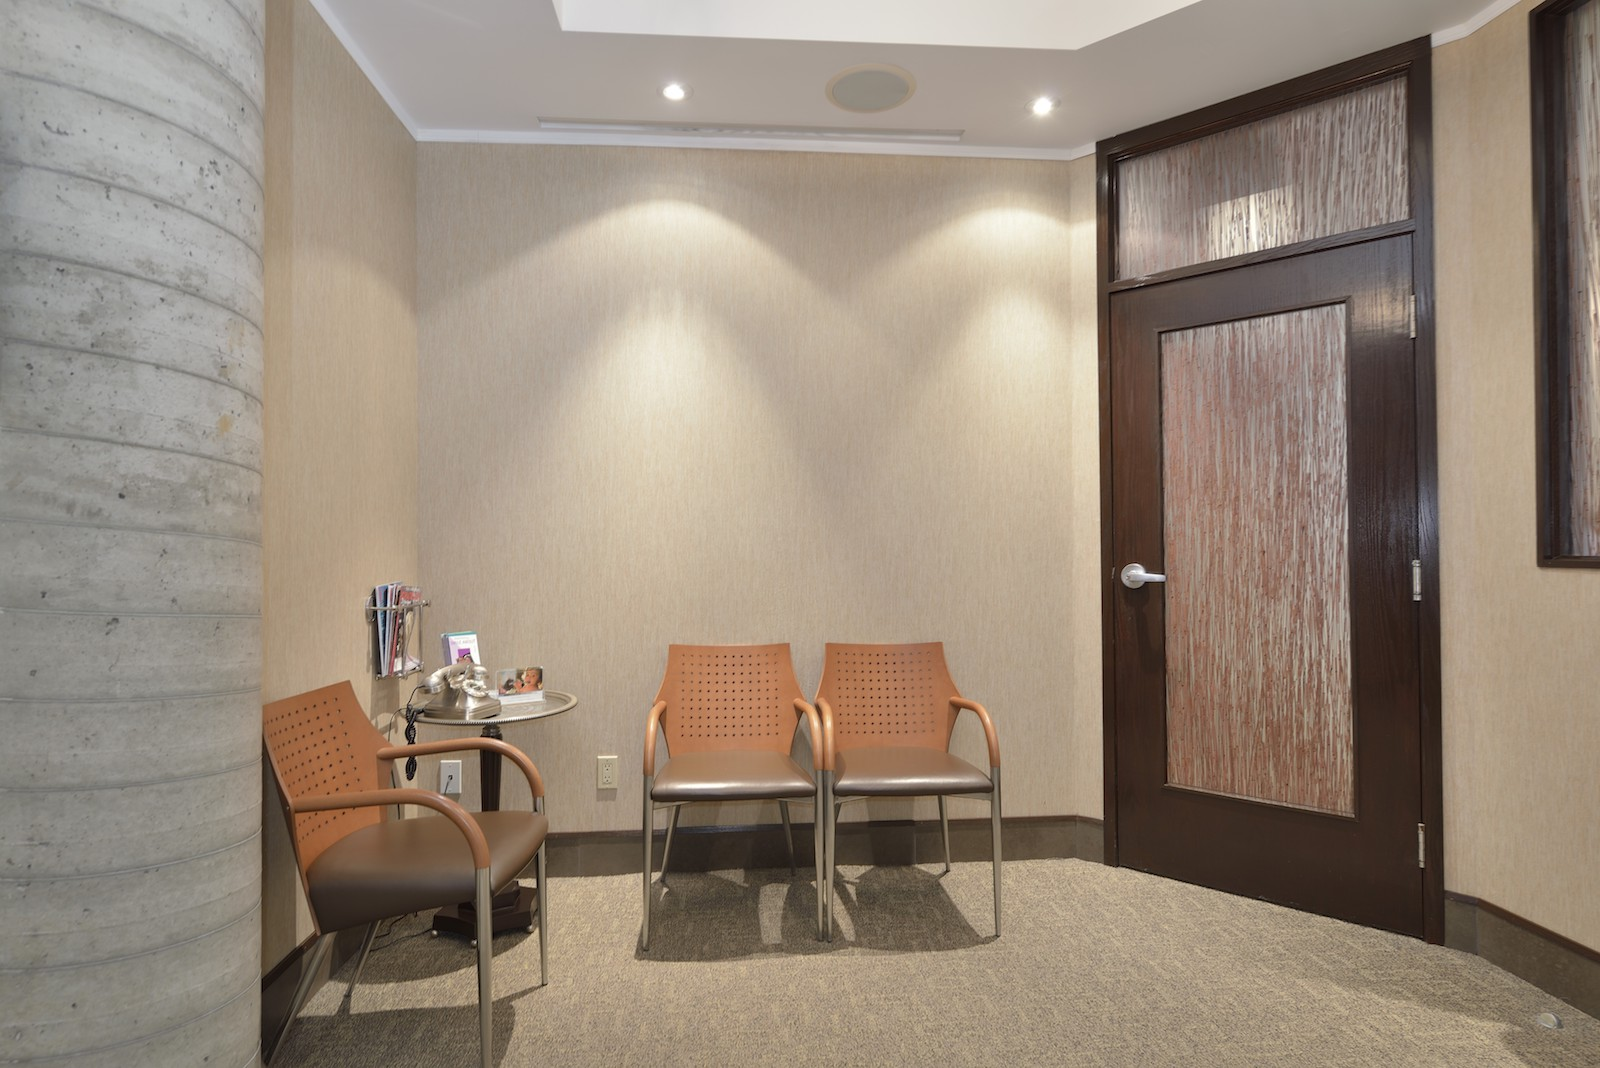 Waiting Area | Dentist North York, ON | Sari Novack Dentistry